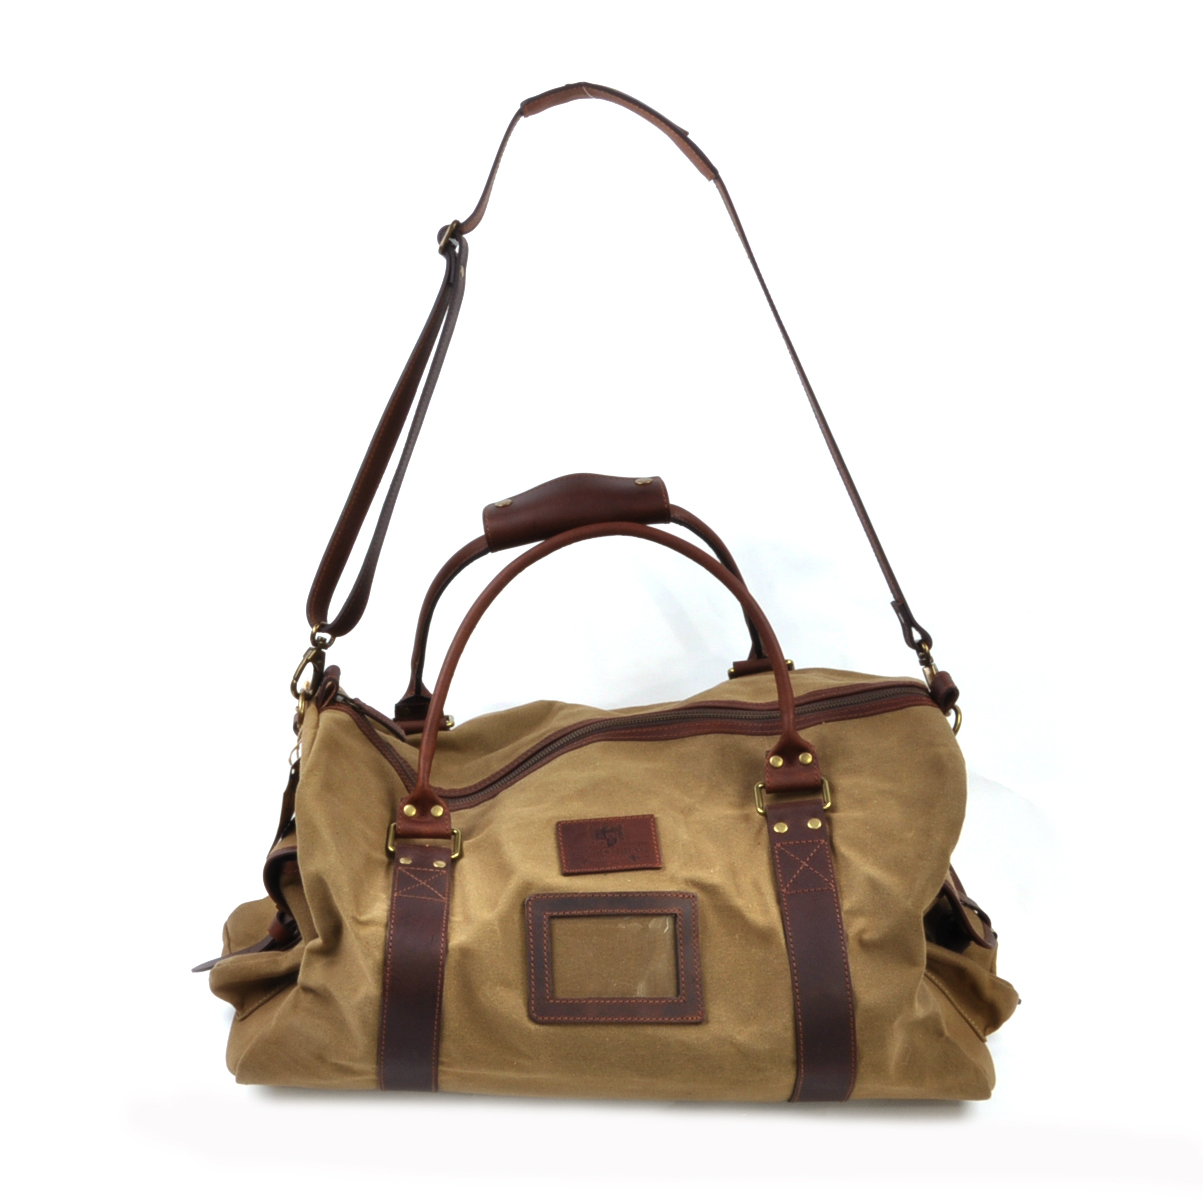 Details About Large Hold All Tough Camel Wax Canvas Weekend Bag By The British Company